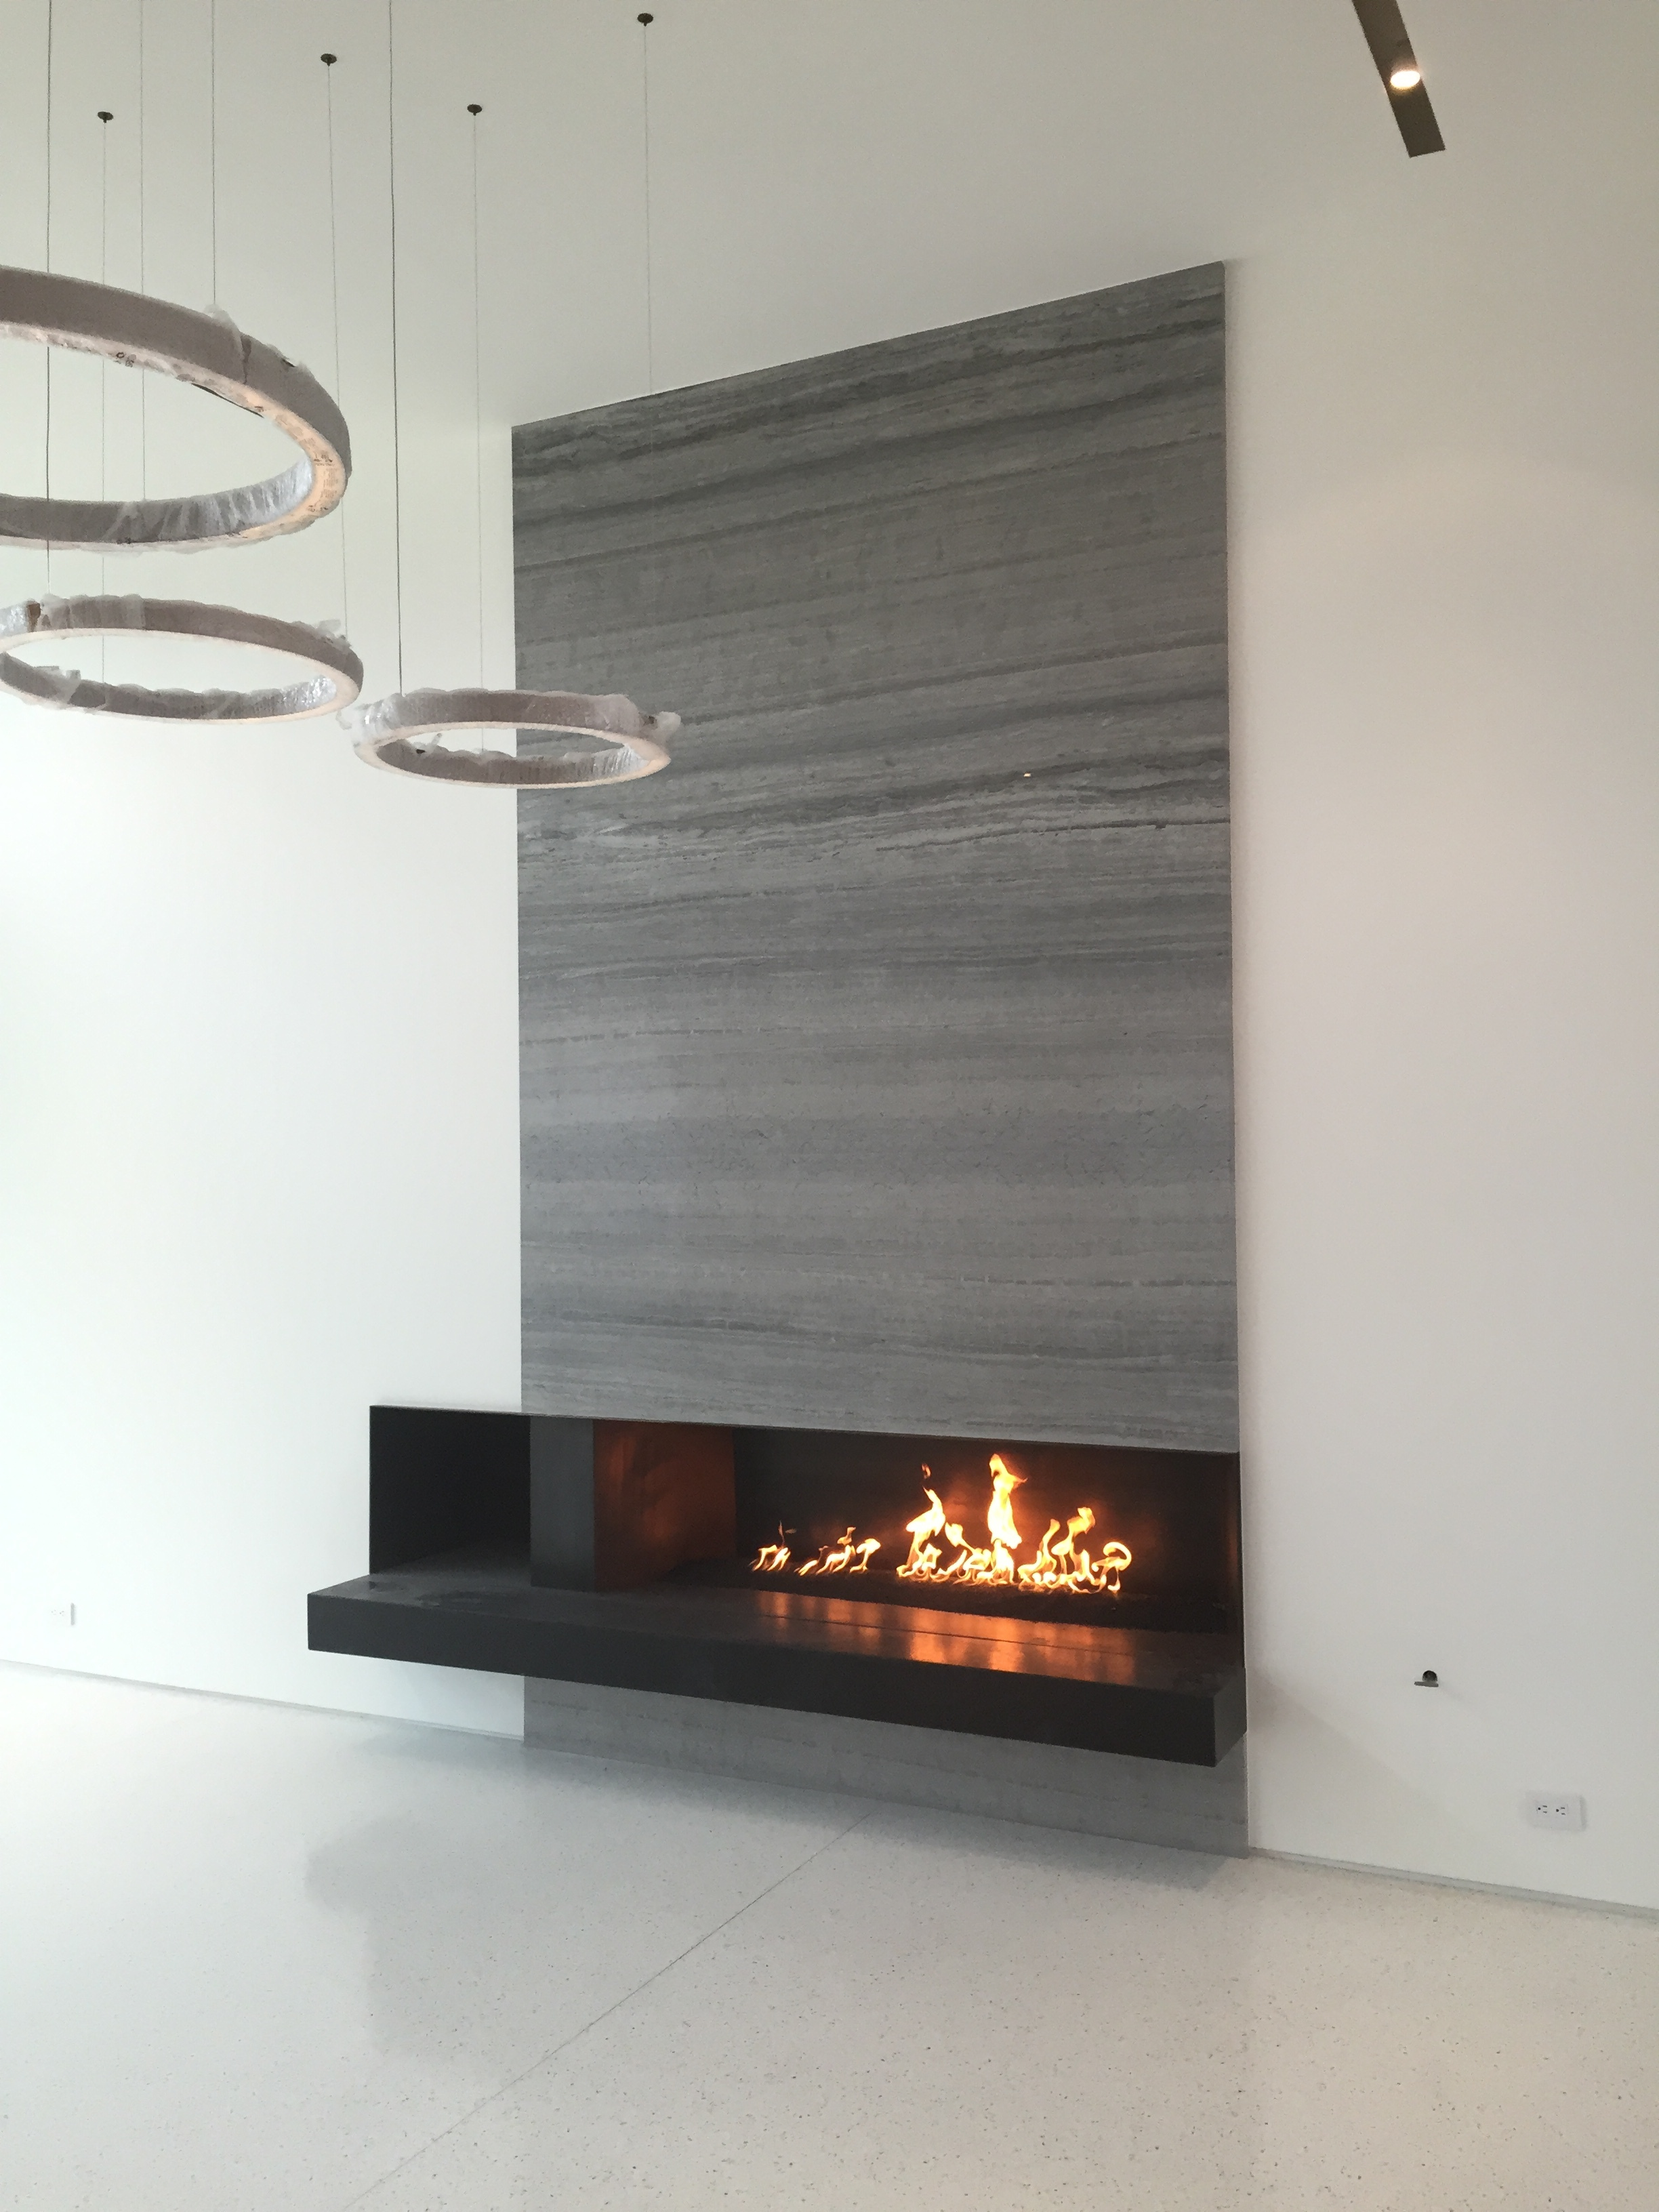 PHOTO OF LIVING ROOM FIREPLACE